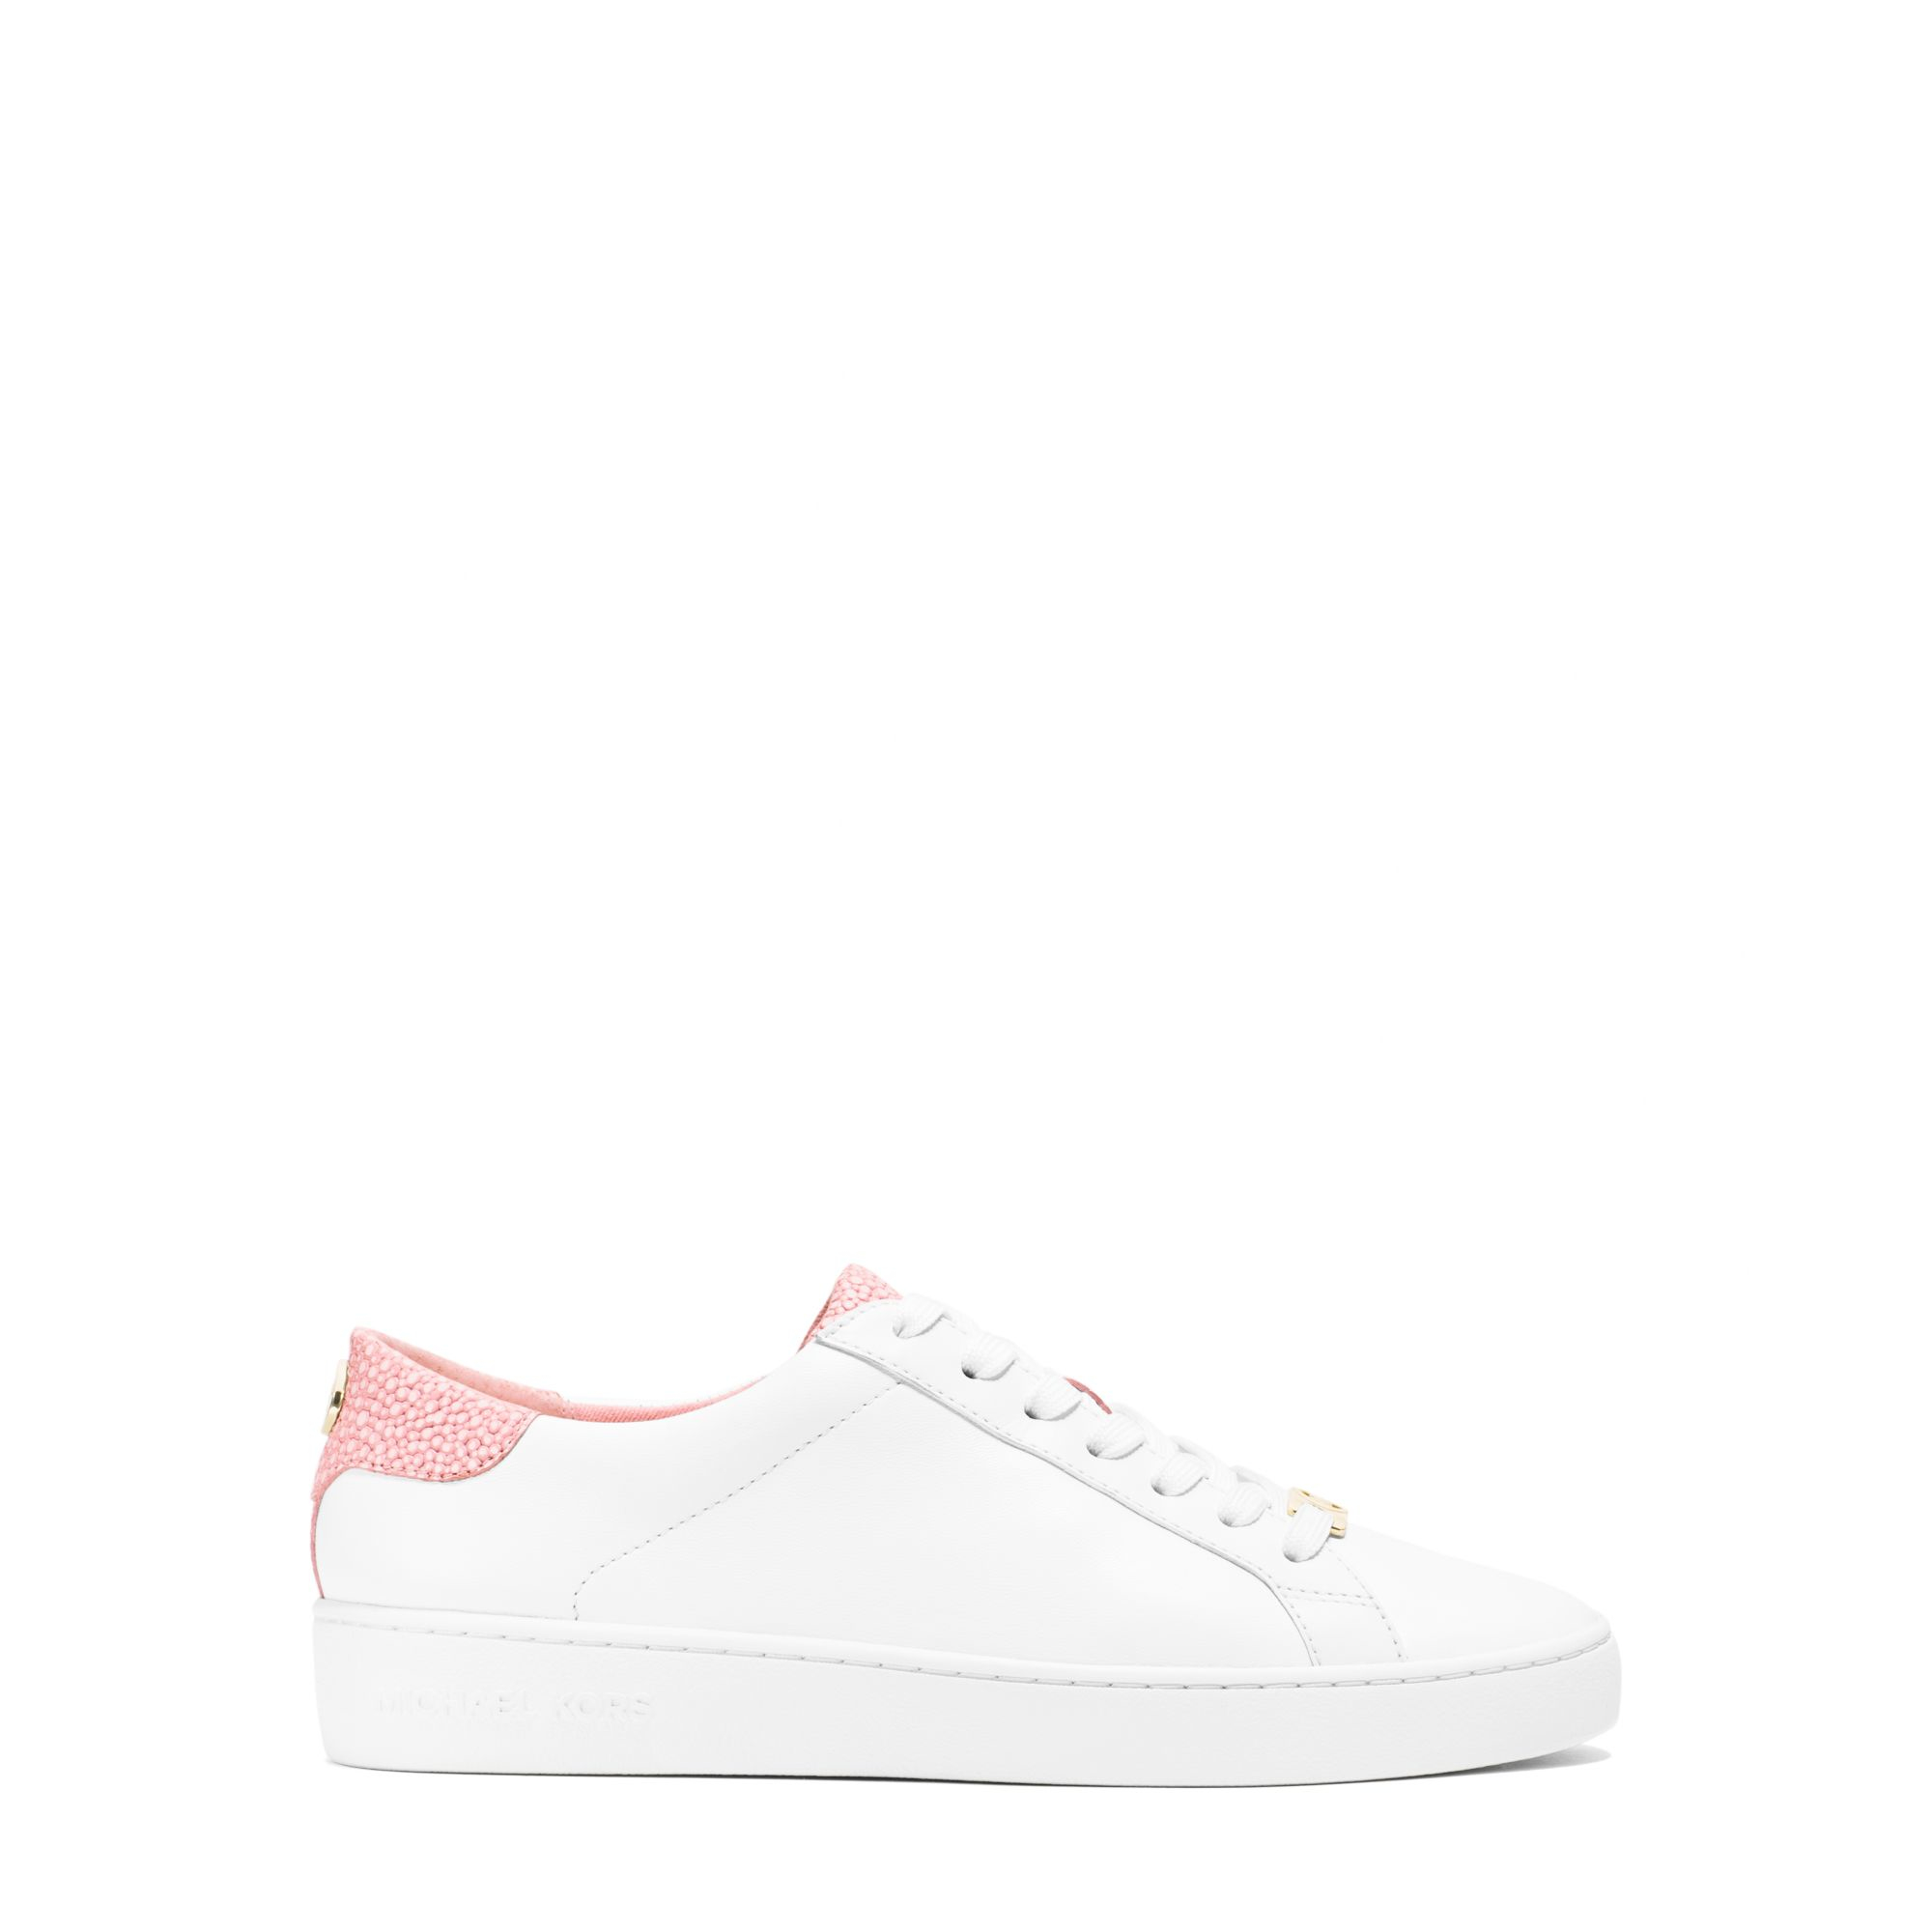 michael kors irving leather sneaker in pink lyst